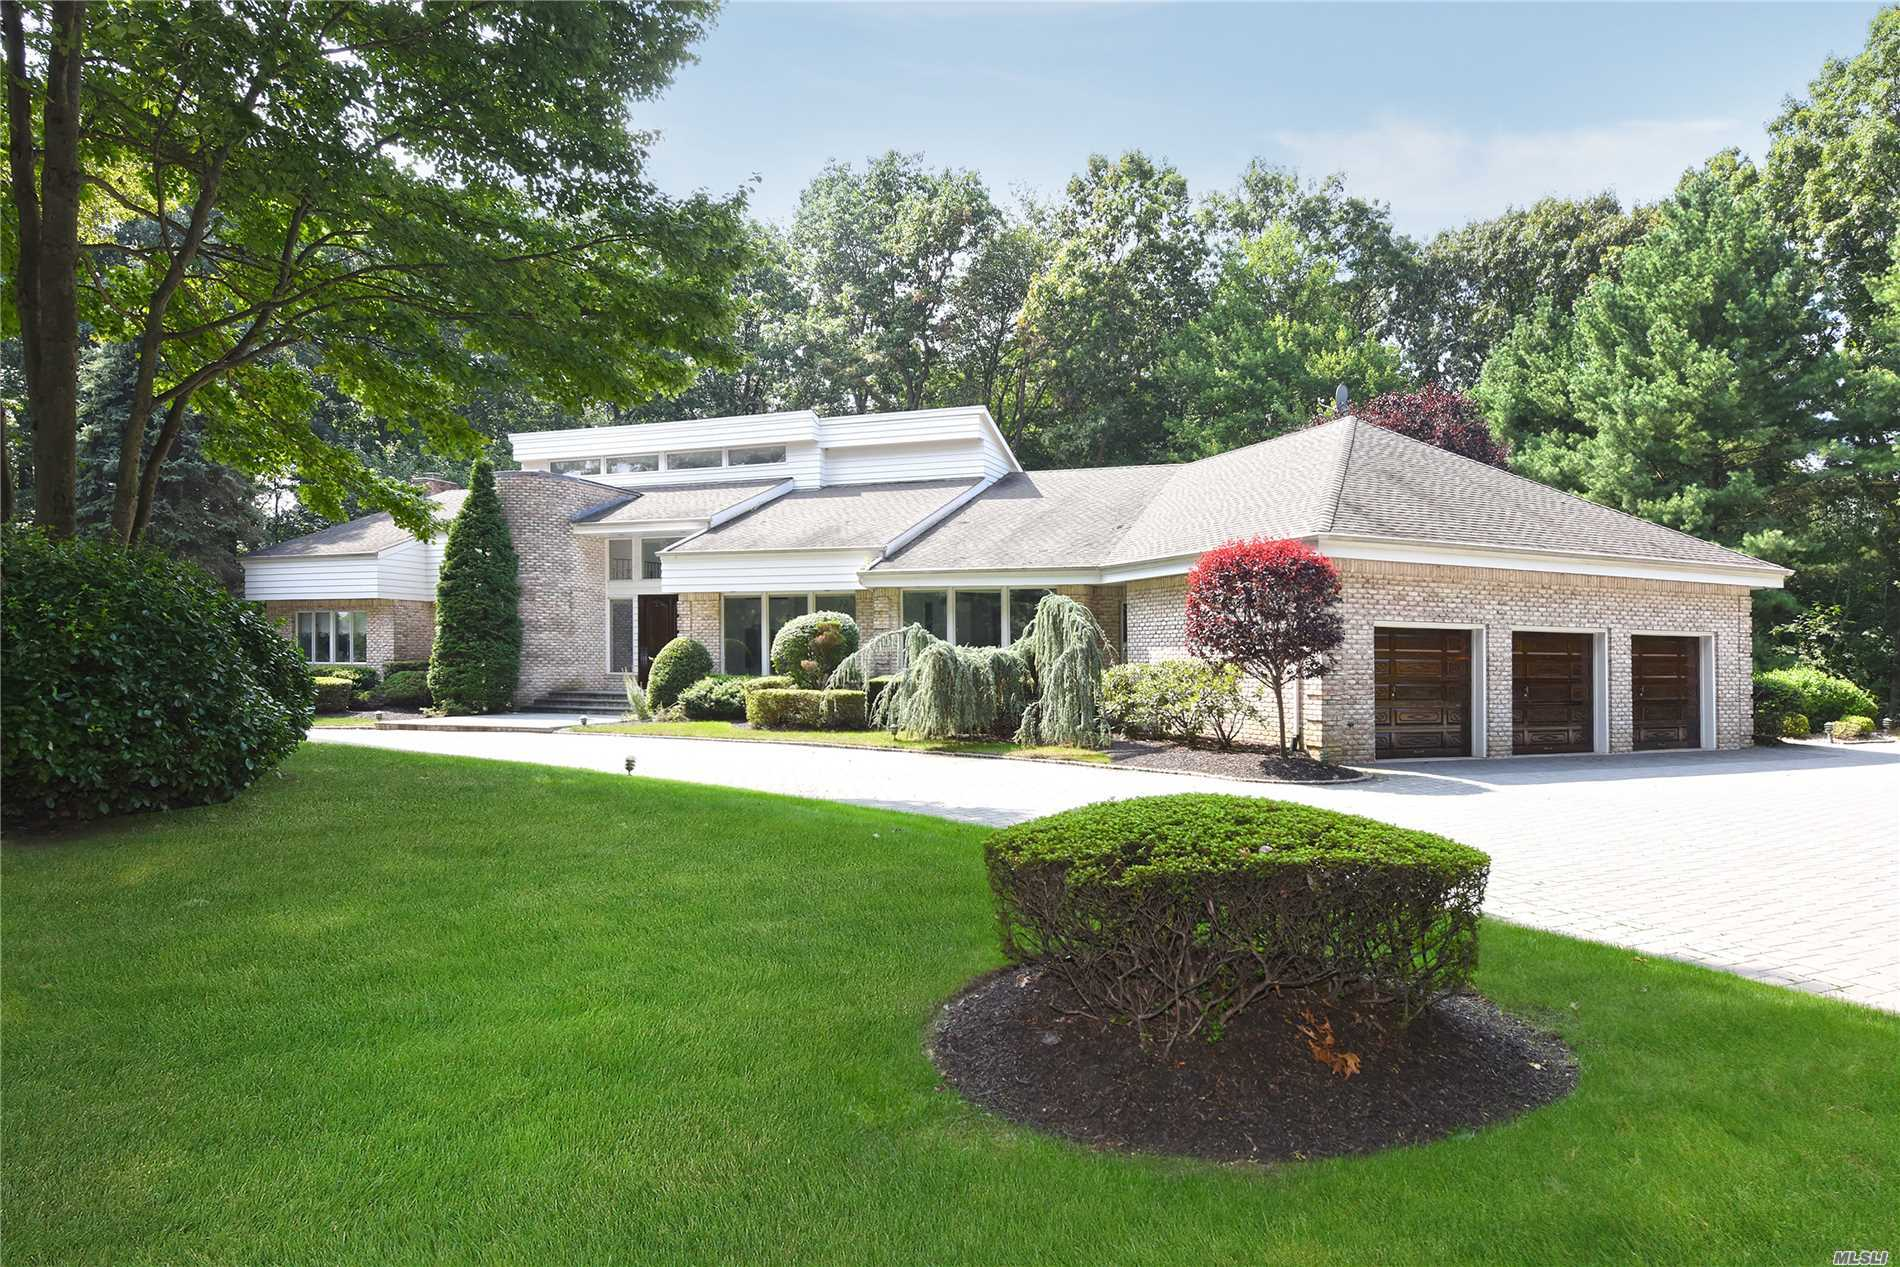 Serenely Set On 2.3 Acres In The Estate Area Of Upper Brookville. This Custom Built Ranch Style Residence Features A Thoughtfully Designed Layout Allowing For Easy One Floor Living. The Den Is An Impressive Showcase Inspired By European Libraries. The Graceful Staircase Ascends To Additional Bedrooms. Imported Materials, Marble Bath, Steam Shower, Sauna And More In A Spacious Master Suite. Newly Installed Paver Driveway, 3-Car Garage, Sewers, Generator And Security Cameras Are Just More Perks.